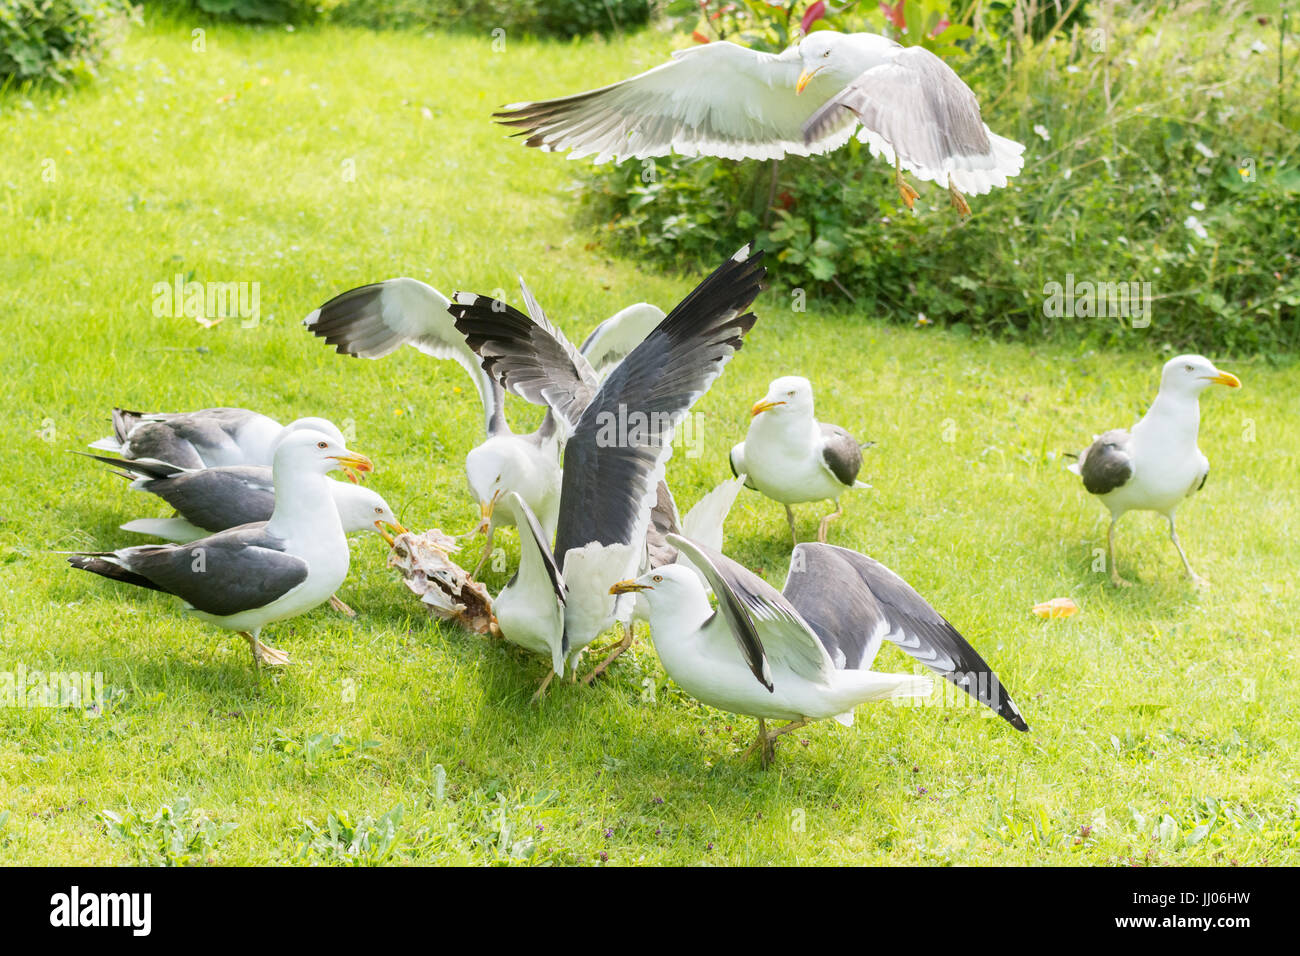 gulls in garden squabbling over cooked chicken carcass Stock Photo